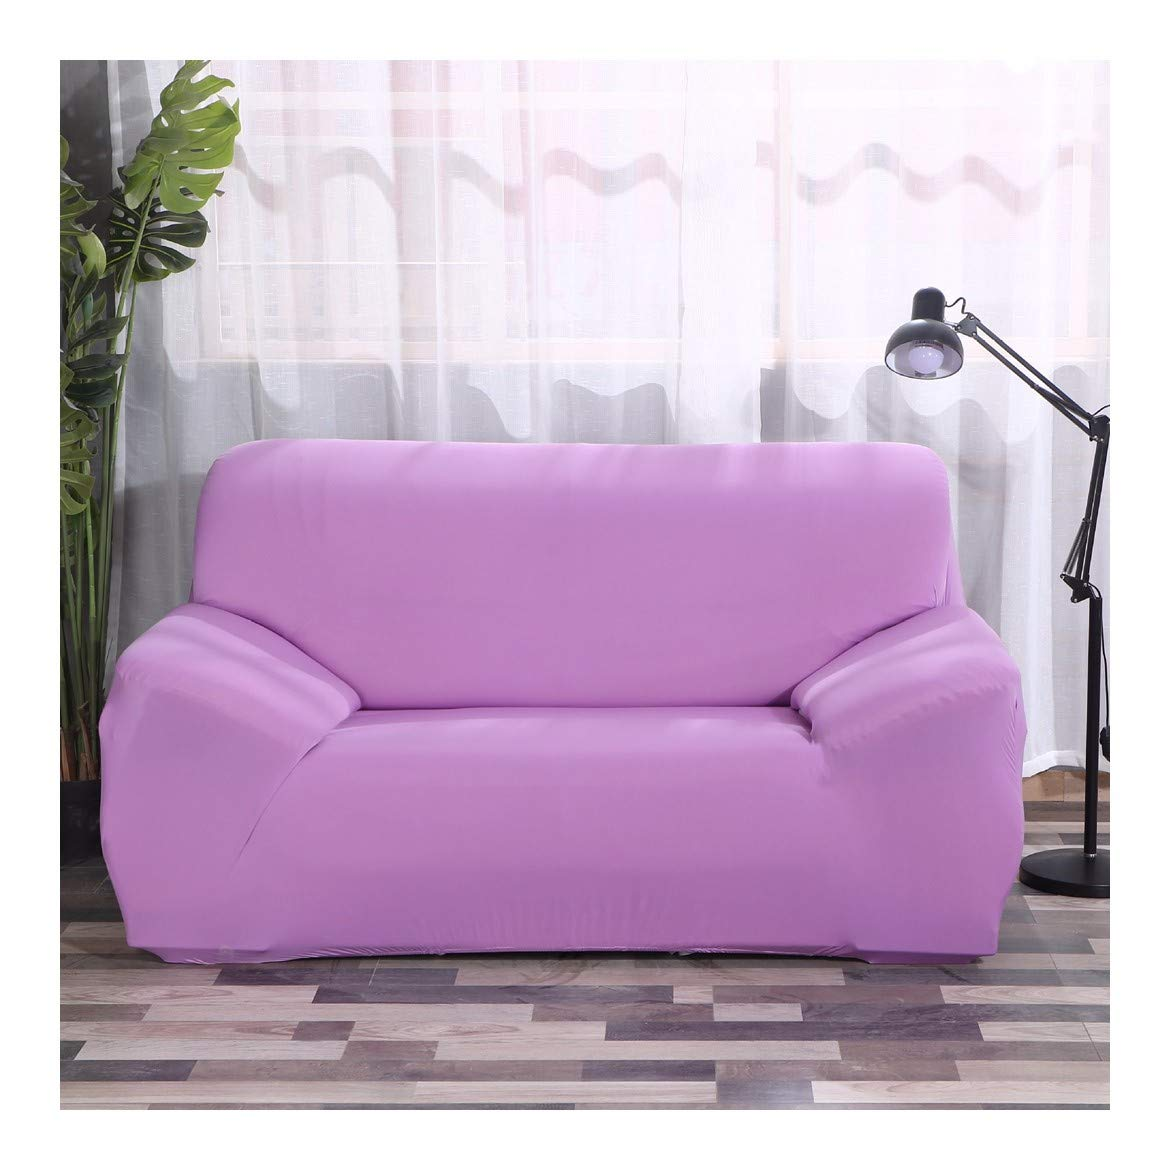 4seat VGUYFUYH Light Purple Four Seasons Universal Sofa Cover Full Package Elasticity Home Universal Sofa Cover Simple Fashion One Set Durable Dust-Proof Pet Dog Predective Cover,4Seat